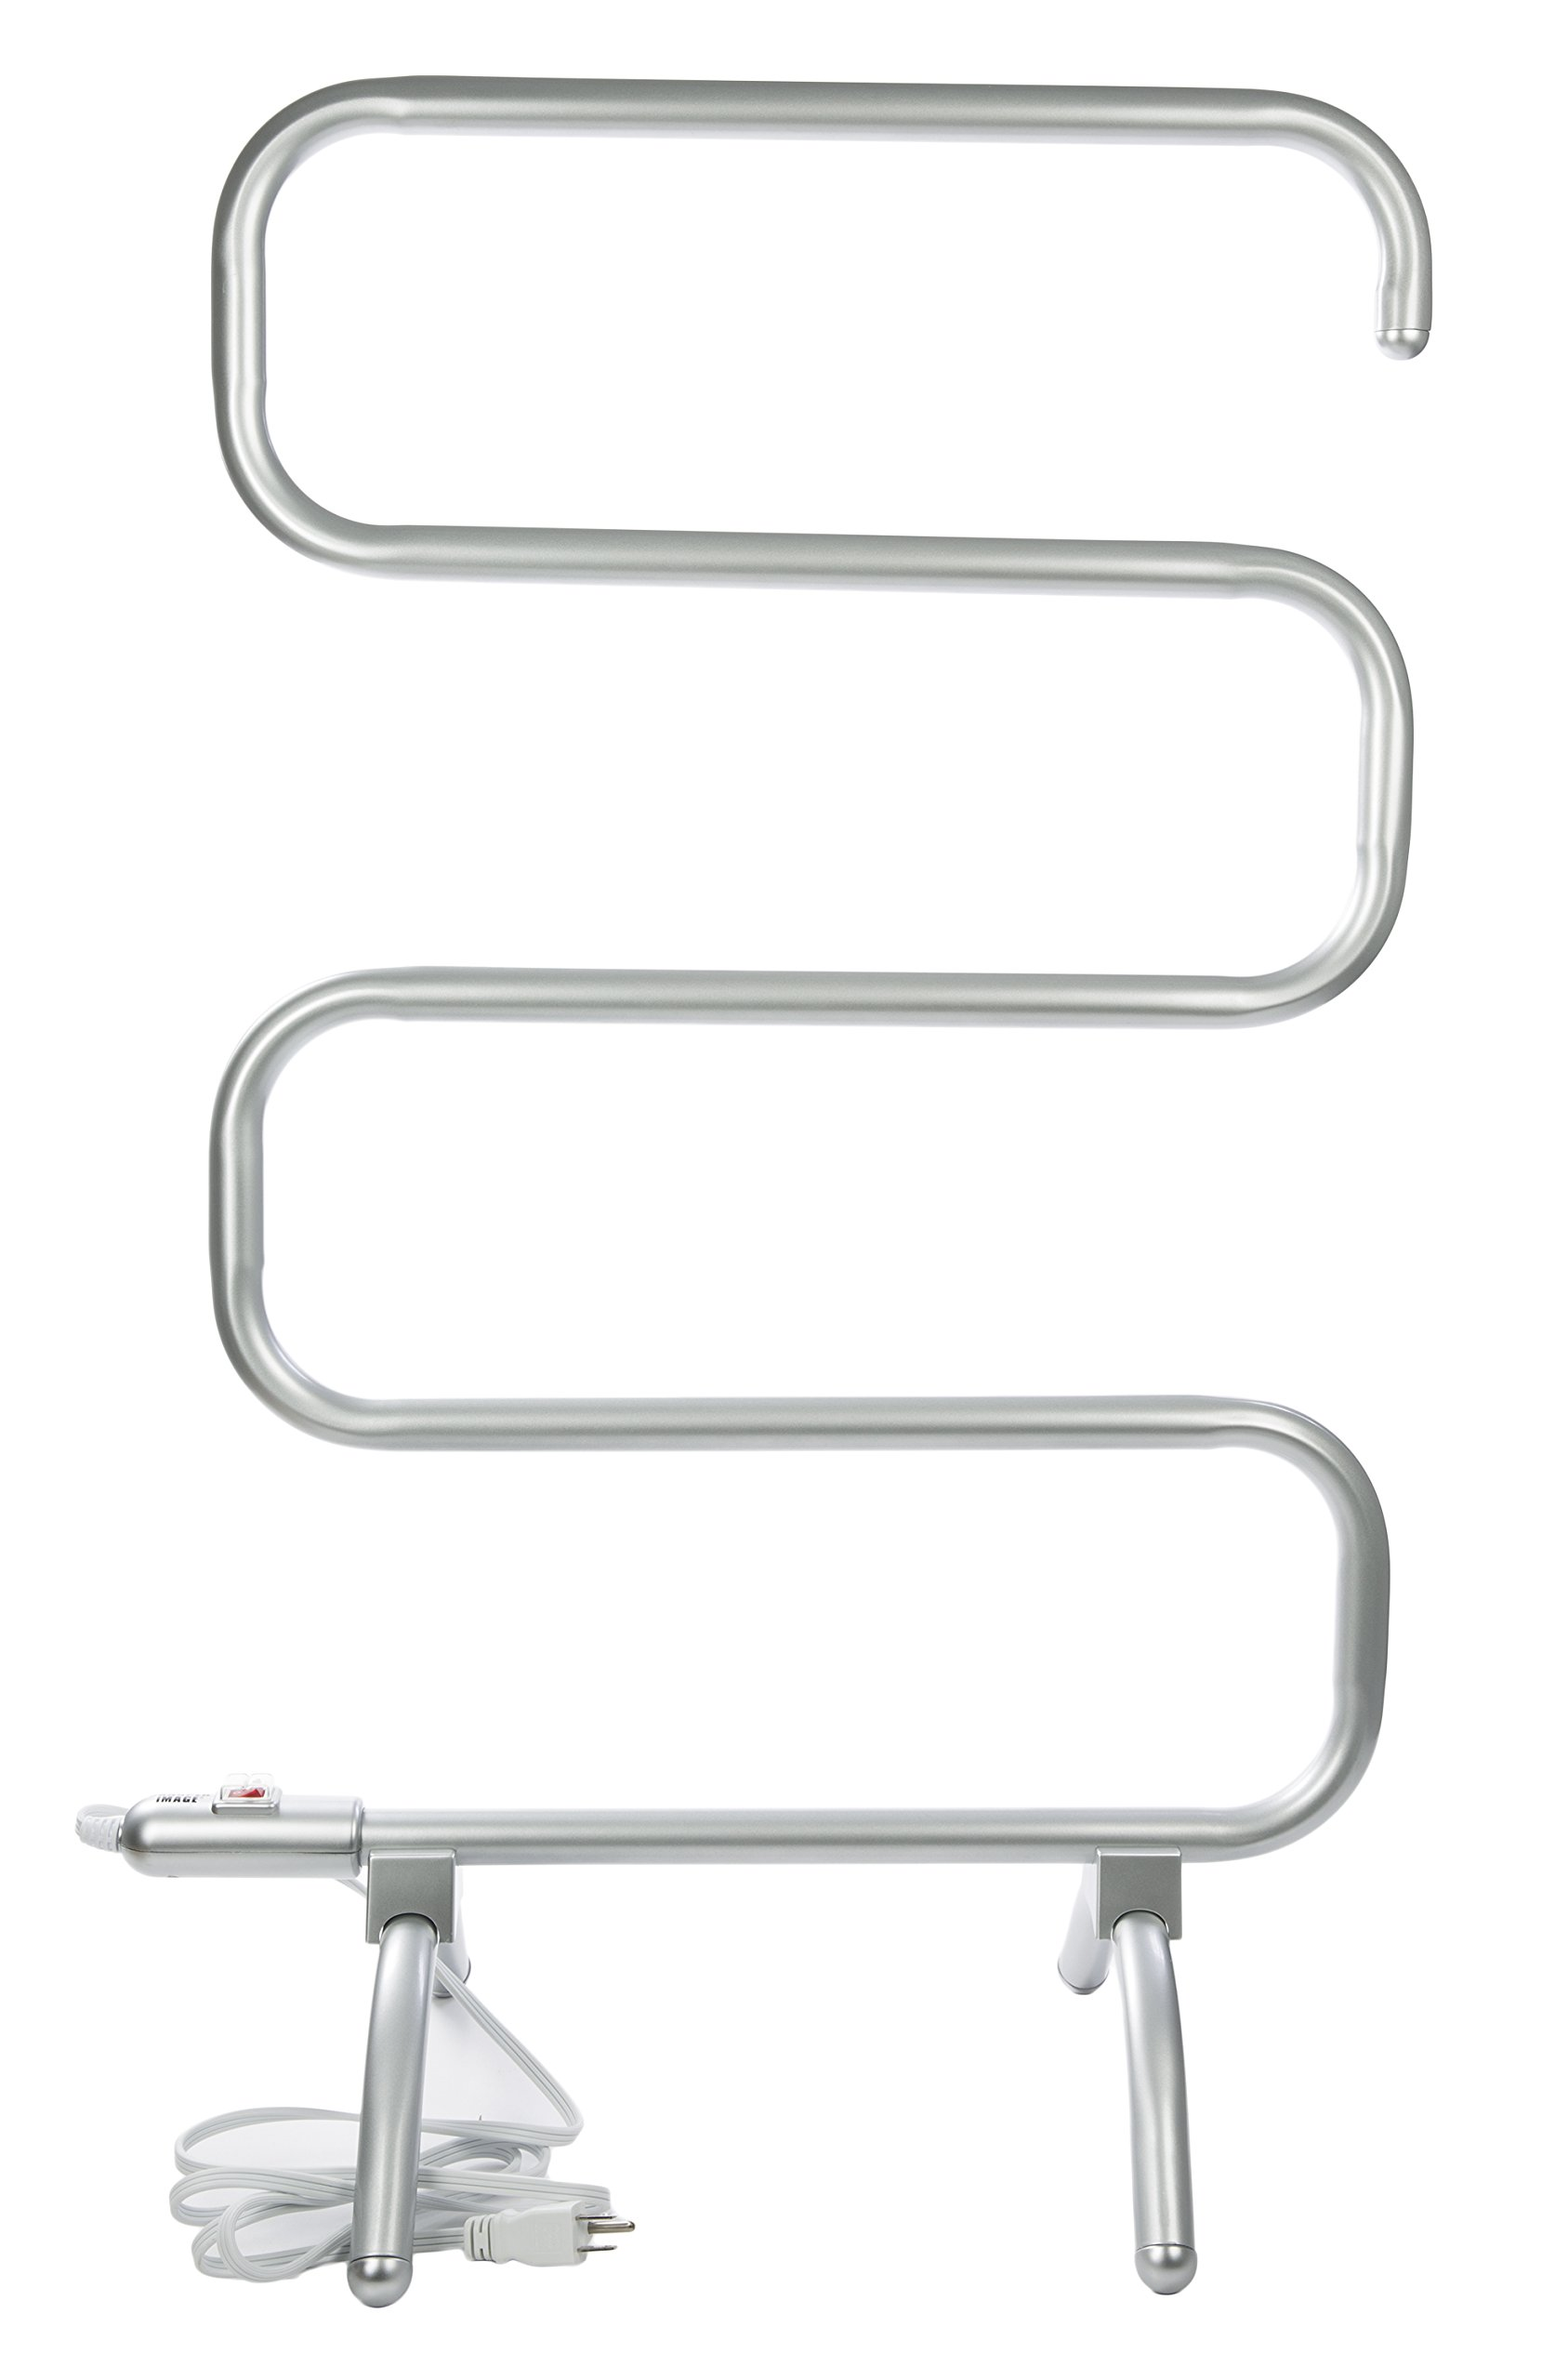 Sharper Image, Silver Curved Towel Warmer by Sharper Image